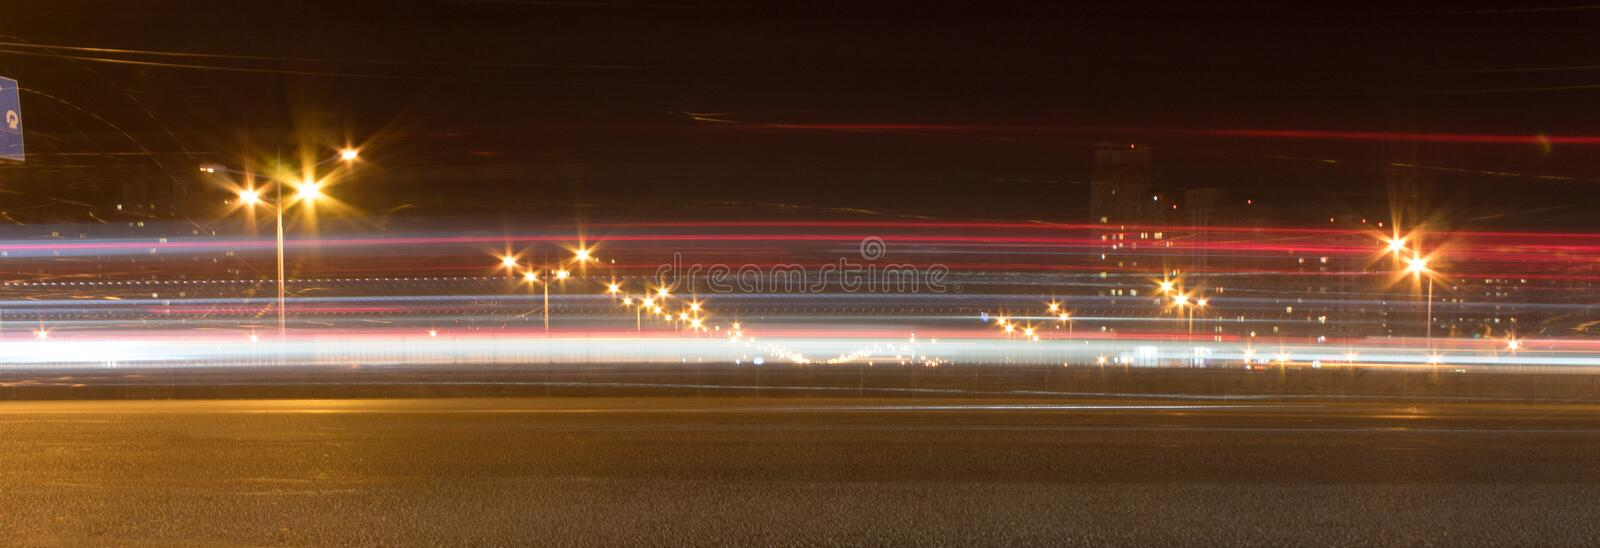 The motorway at night. The car moves at fast speed at the night. Blured road with lights with car on high speed. Panorama, banner royalty free stock photography